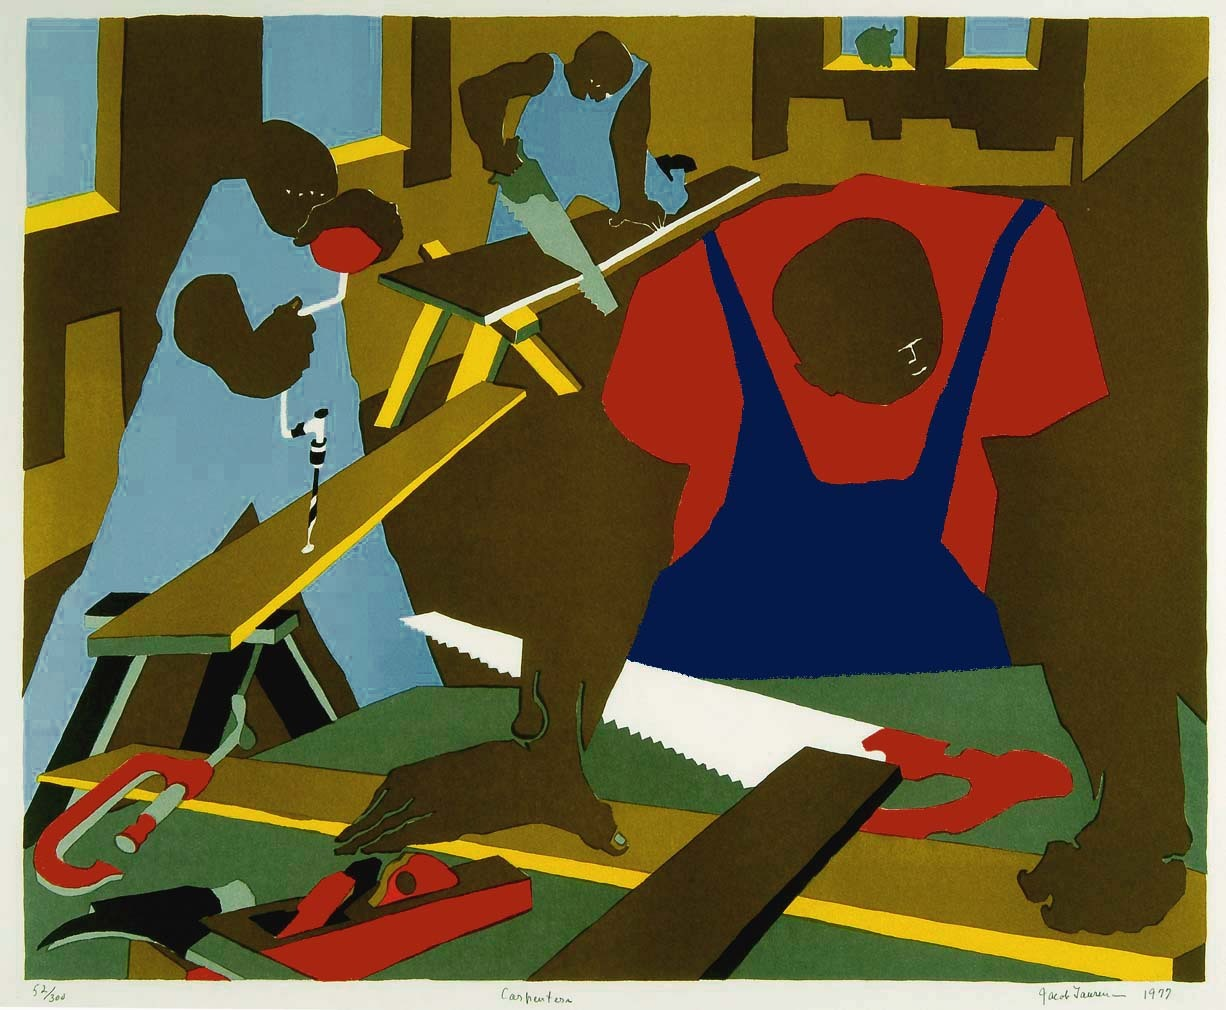 Carpenters (1977) | Jacob Lawrence